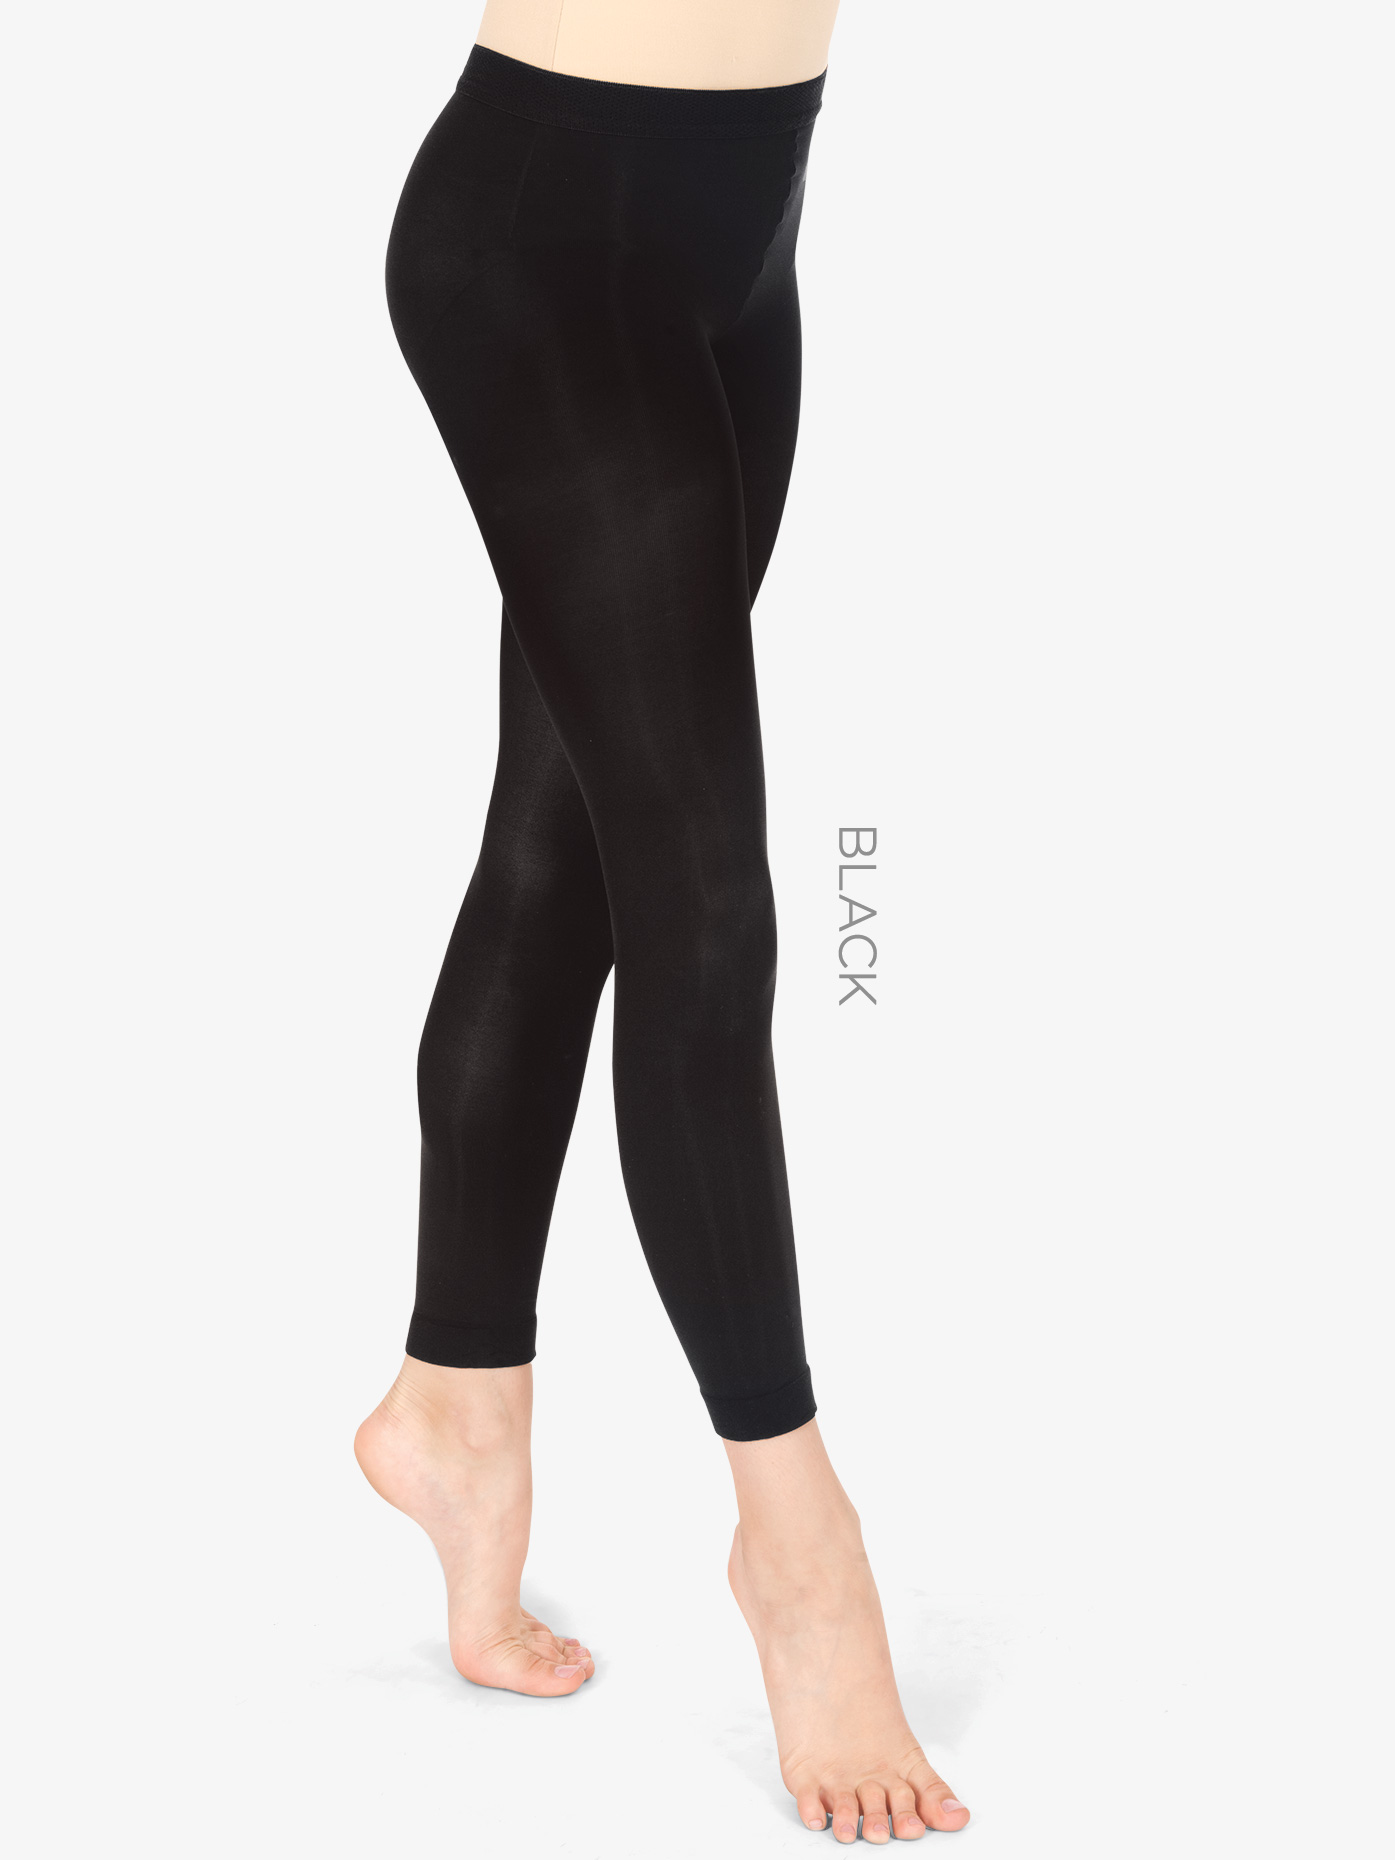 Theatricals Adult Footless Tights T5600